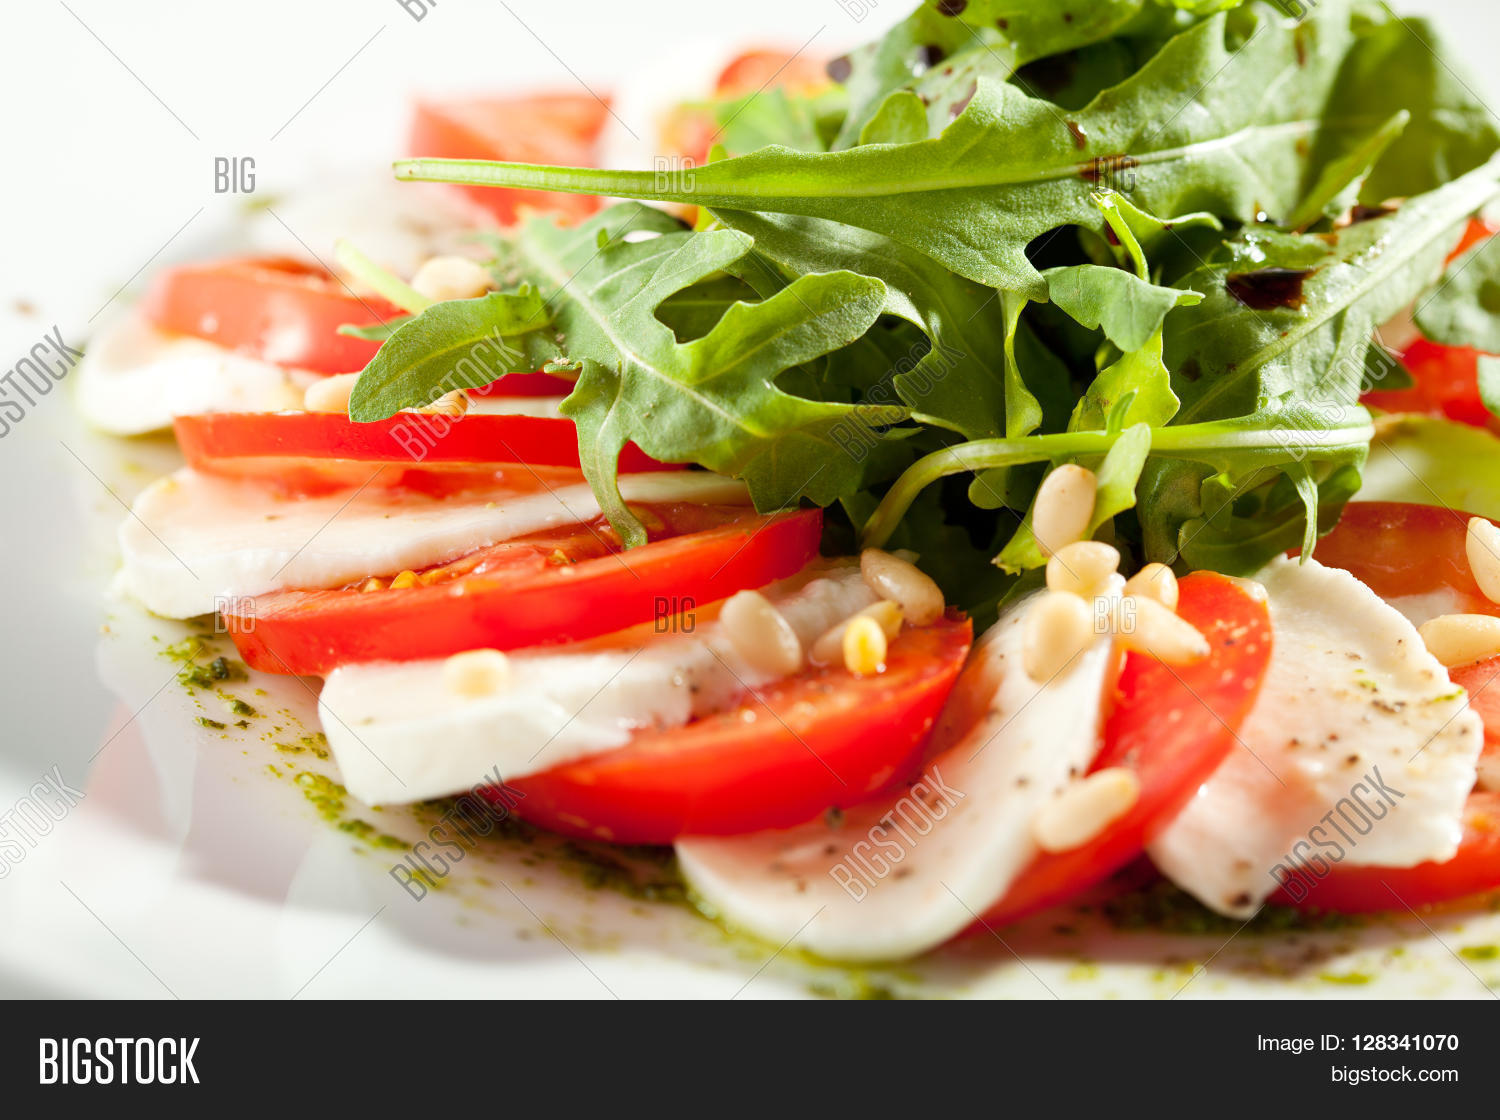 Caprese Salad - Salad with Tomatoes, Mozzarella Cheese and ...